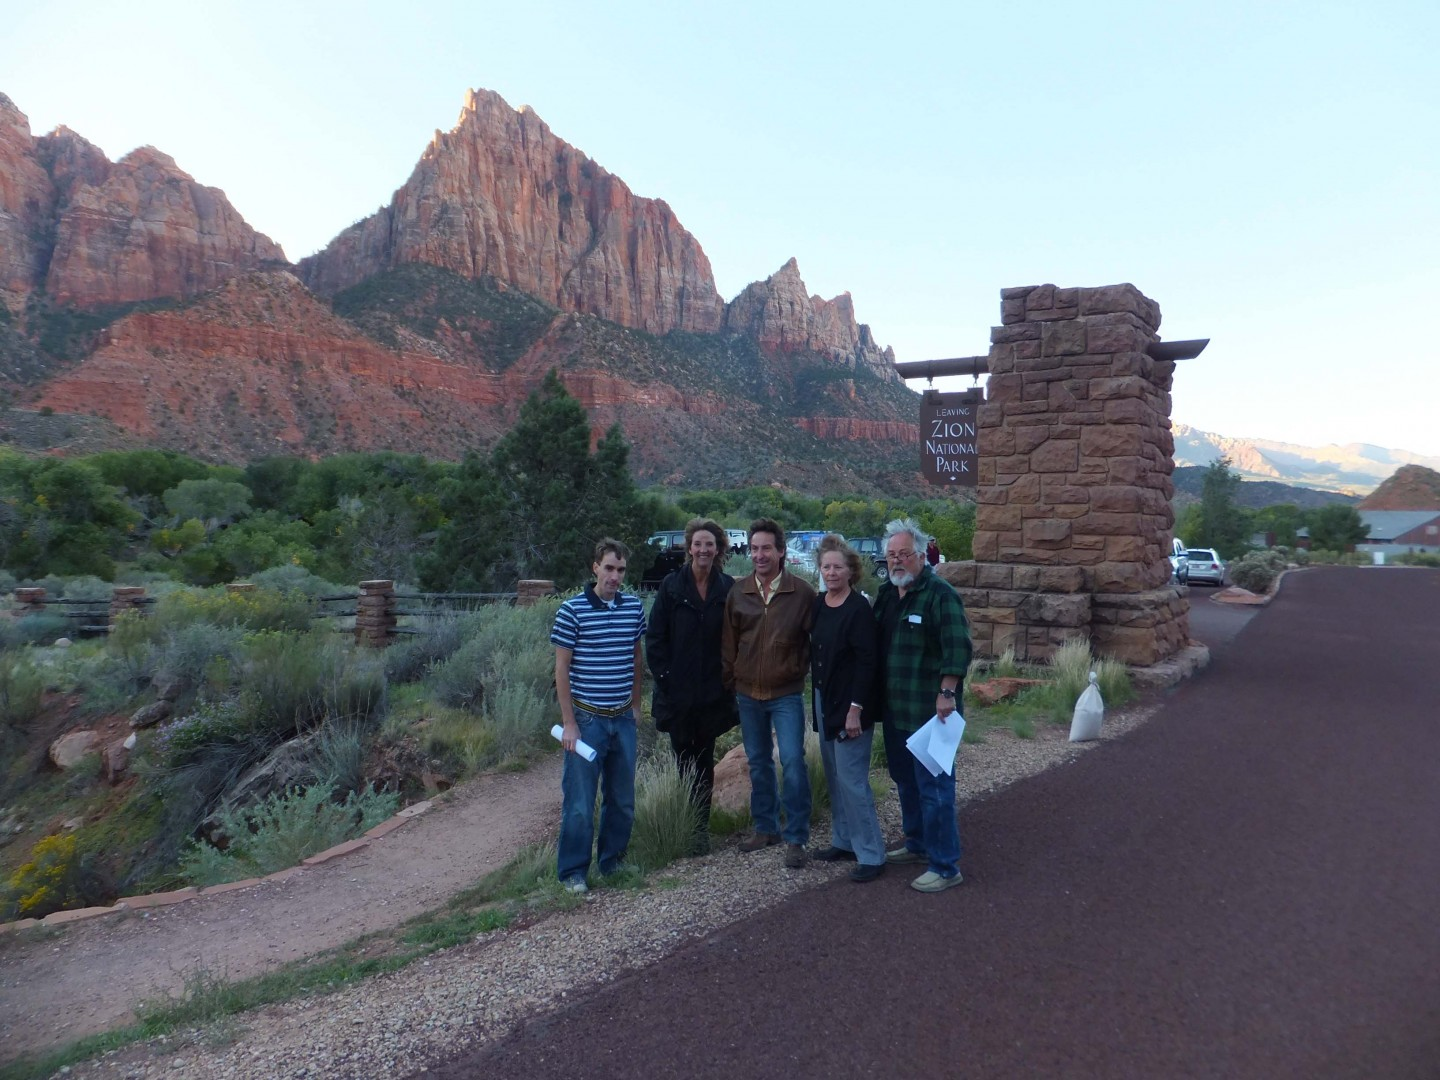 L-R: Tom Dansie, Springdale Director of Commuity Development; Kathy LaFave, Springdale Town Councilwoman; Mark Chambers, Springdale Town Council and mayoral candidate; Louise Excell, Springdale Town Councilwoman; and Larry McKown, Springdale business owner; all standing at the gateway to the recently closed Zion National Park, Springdale, Utah, Oct. 1, 2013 | Photo by Dan Mabbutt, St. George News